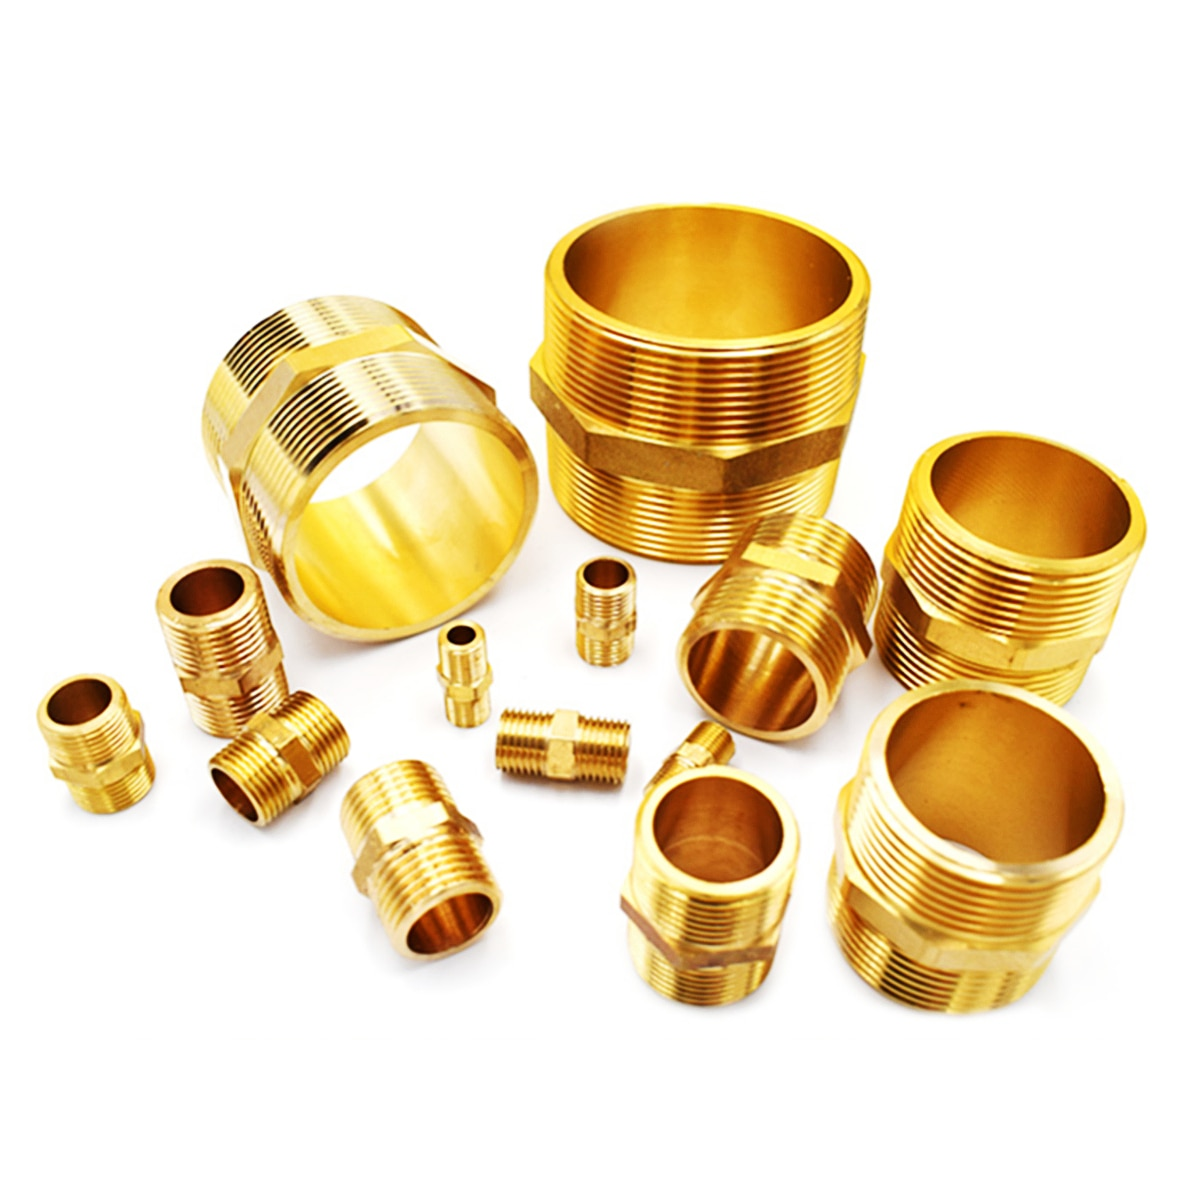 brass pipe hex nipple fitting quick adapter 1 8 1 4 3 8 1 2 3 4 1 bsp male thread water oil and gas connector 1PC Brass Pipe Hex Nipple Fitting 1/8 1/4 3/8 1/2 3/4 1 BSP Male Thread Quick Adapter Coupler Connector for Water Oil Gas